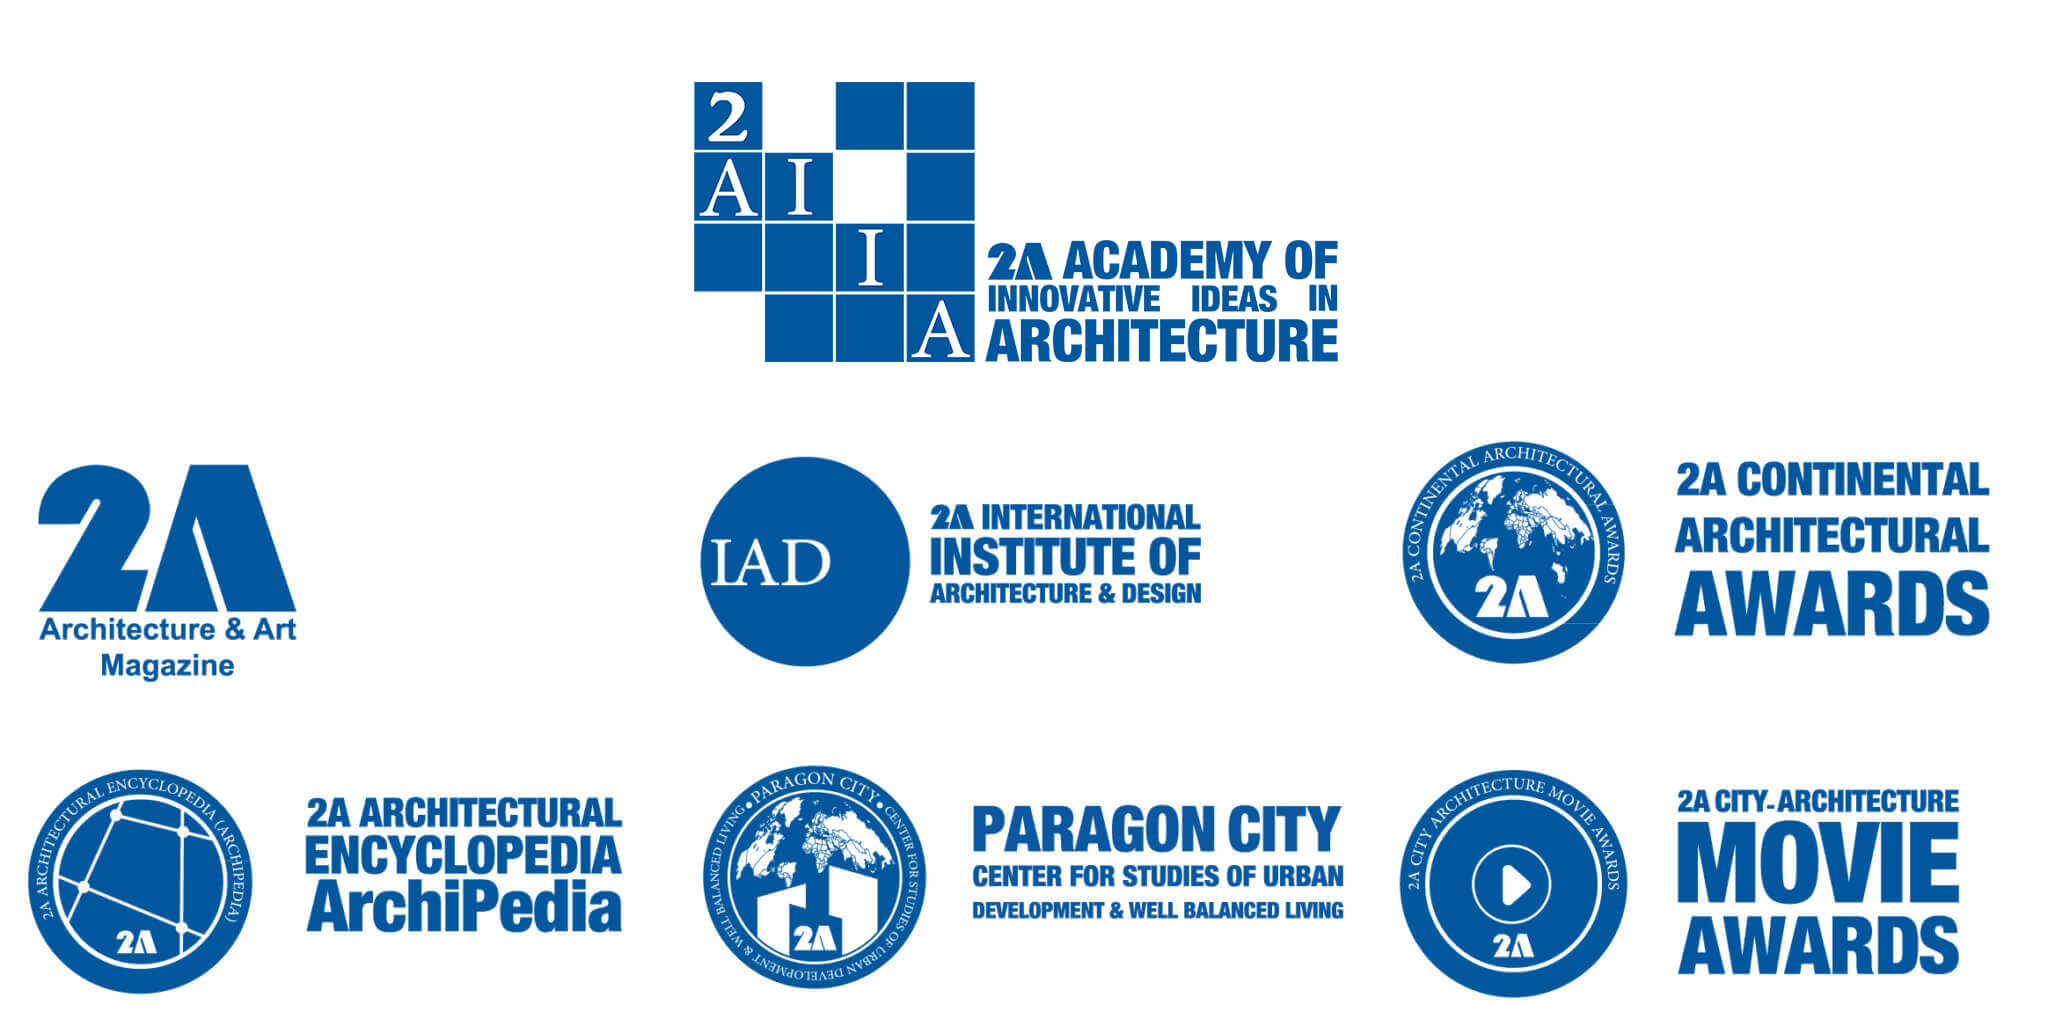 Collection of the Academy of Architecture and Design 2A